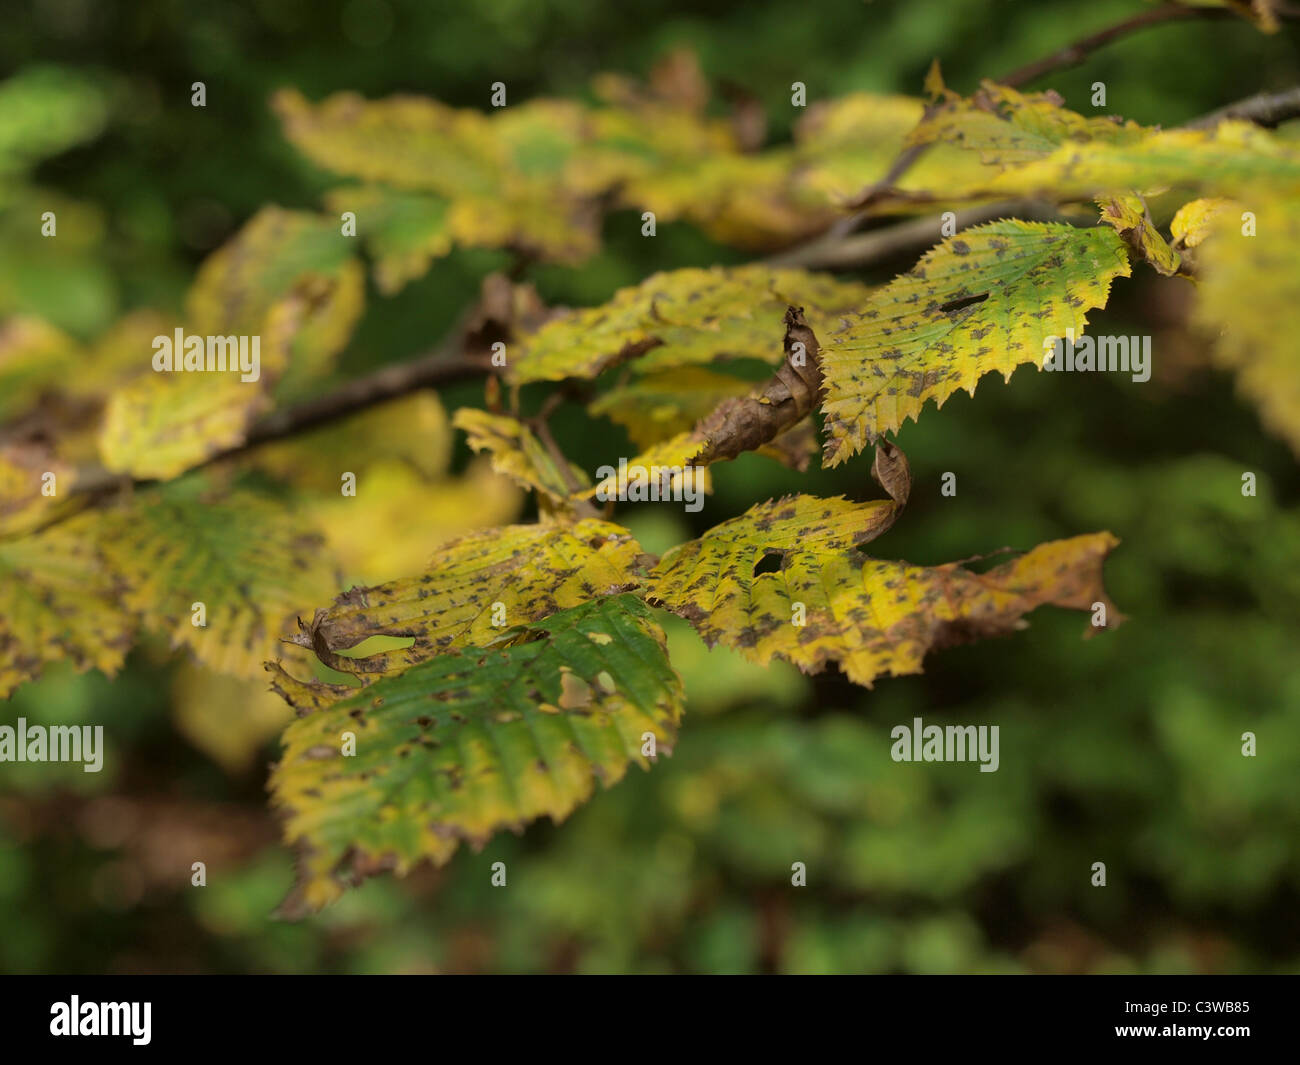 A close-up of yellow, brown and green leaves on a cloudy Autumn day, - Stock Image